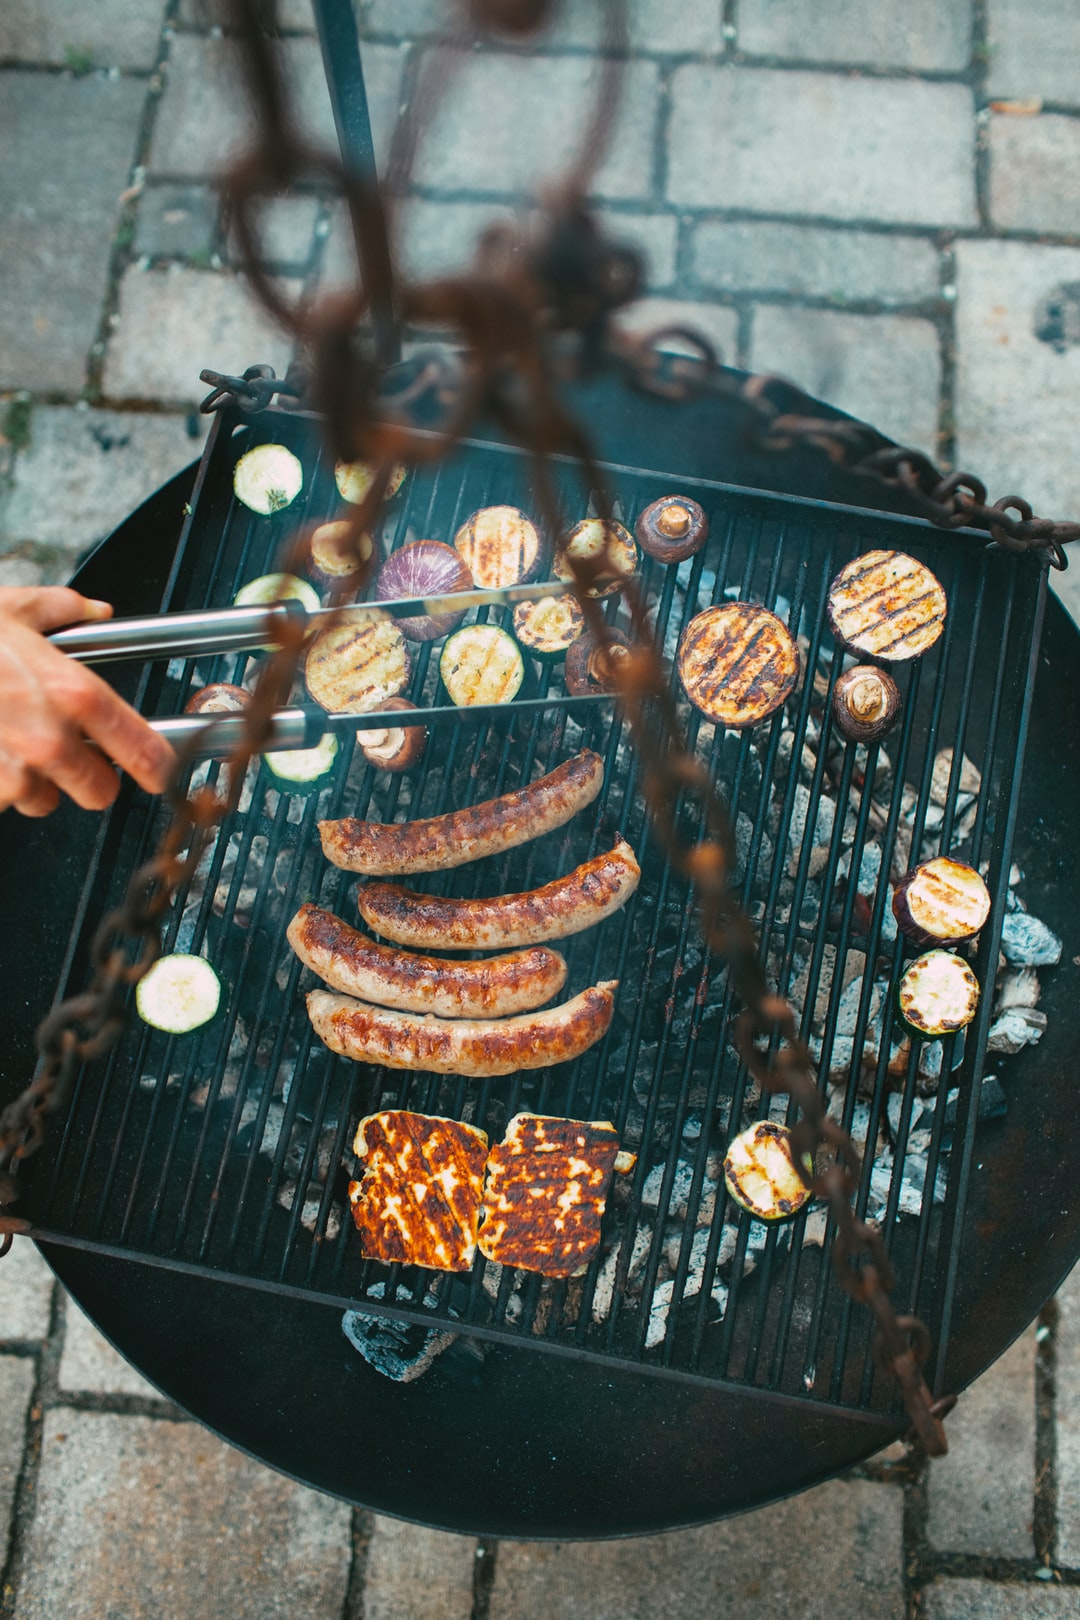 """BBQ with some original Franconian specialty """"Bratwurst"""" (grilled frying sausage) grilled cheese, onion, mushroom and zucchini"""